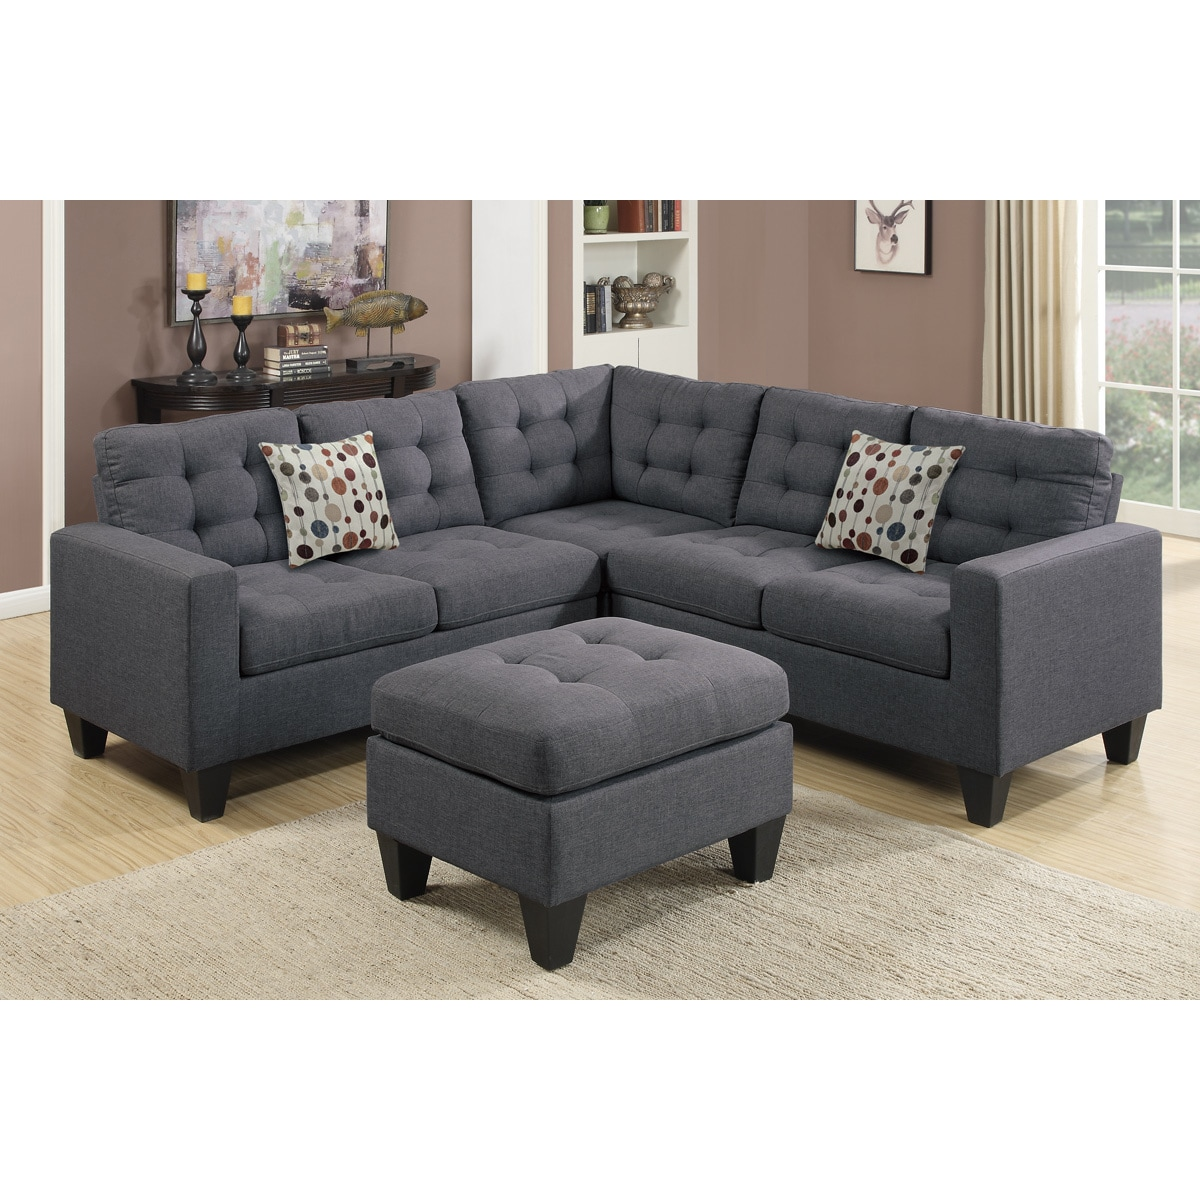 Wondrous Details About Bobkona Norton Linen Like 4 Piece Sectional With Ottoman Set Pabps2019 Chair Design Images Pabps2019Com